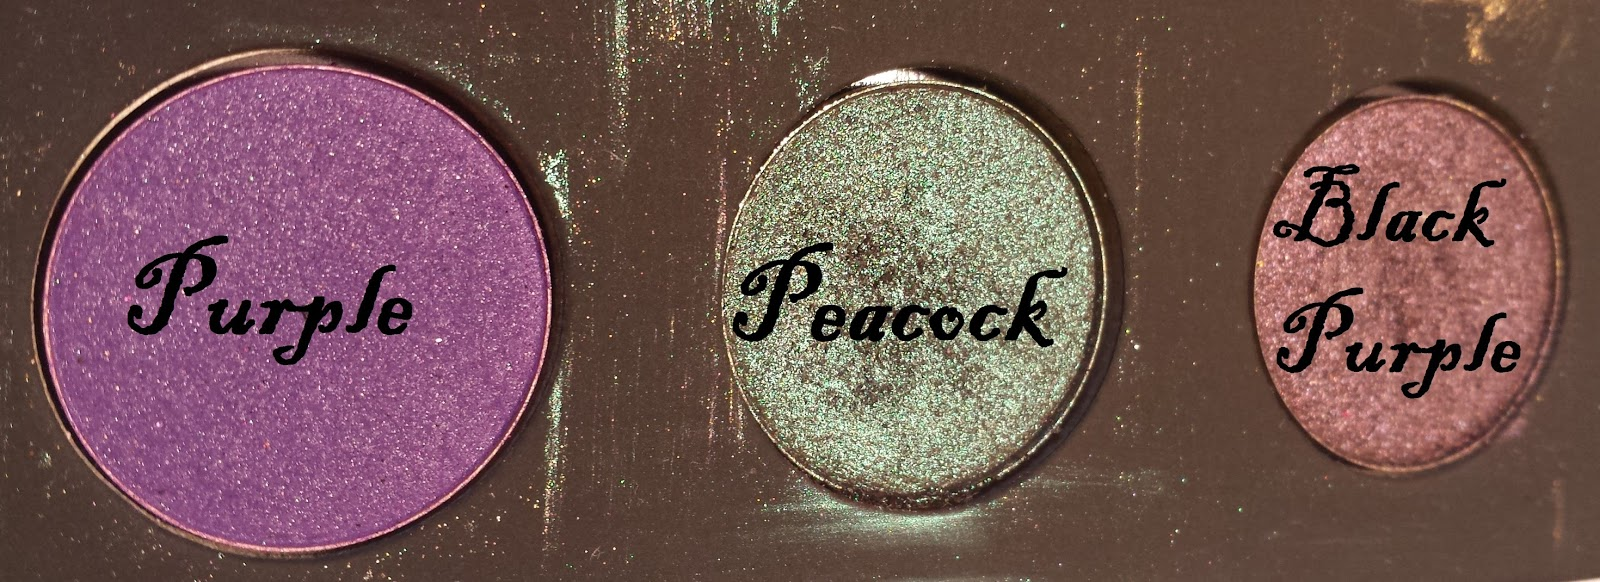 How to diversify your makeup with unusual eye shadow